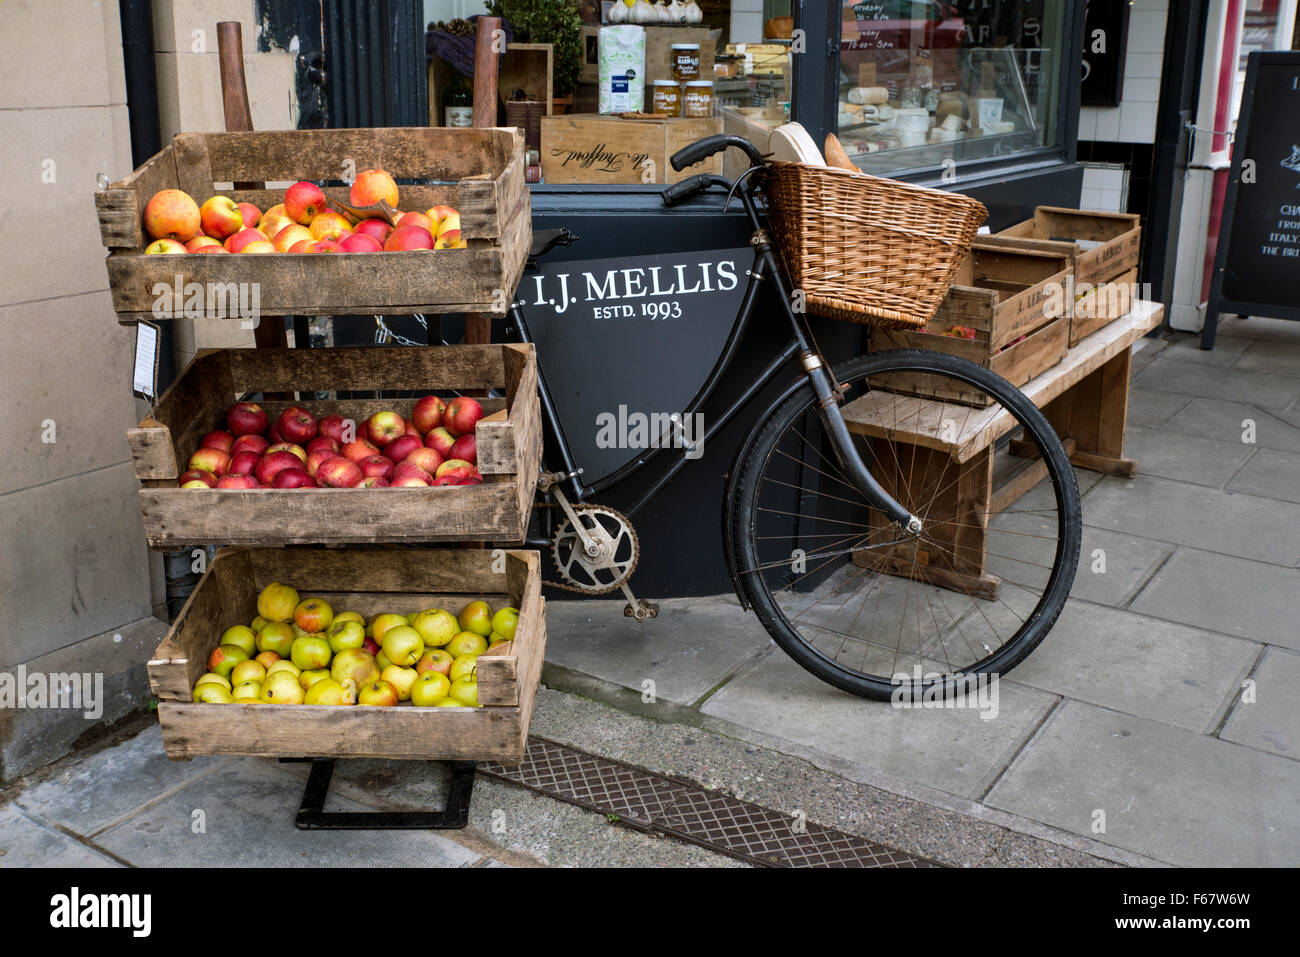 Boxes of apples on display outside the shop of I J Mellis, Cheesemonger, in Stockbridge, Edinburgh. - Stock Image